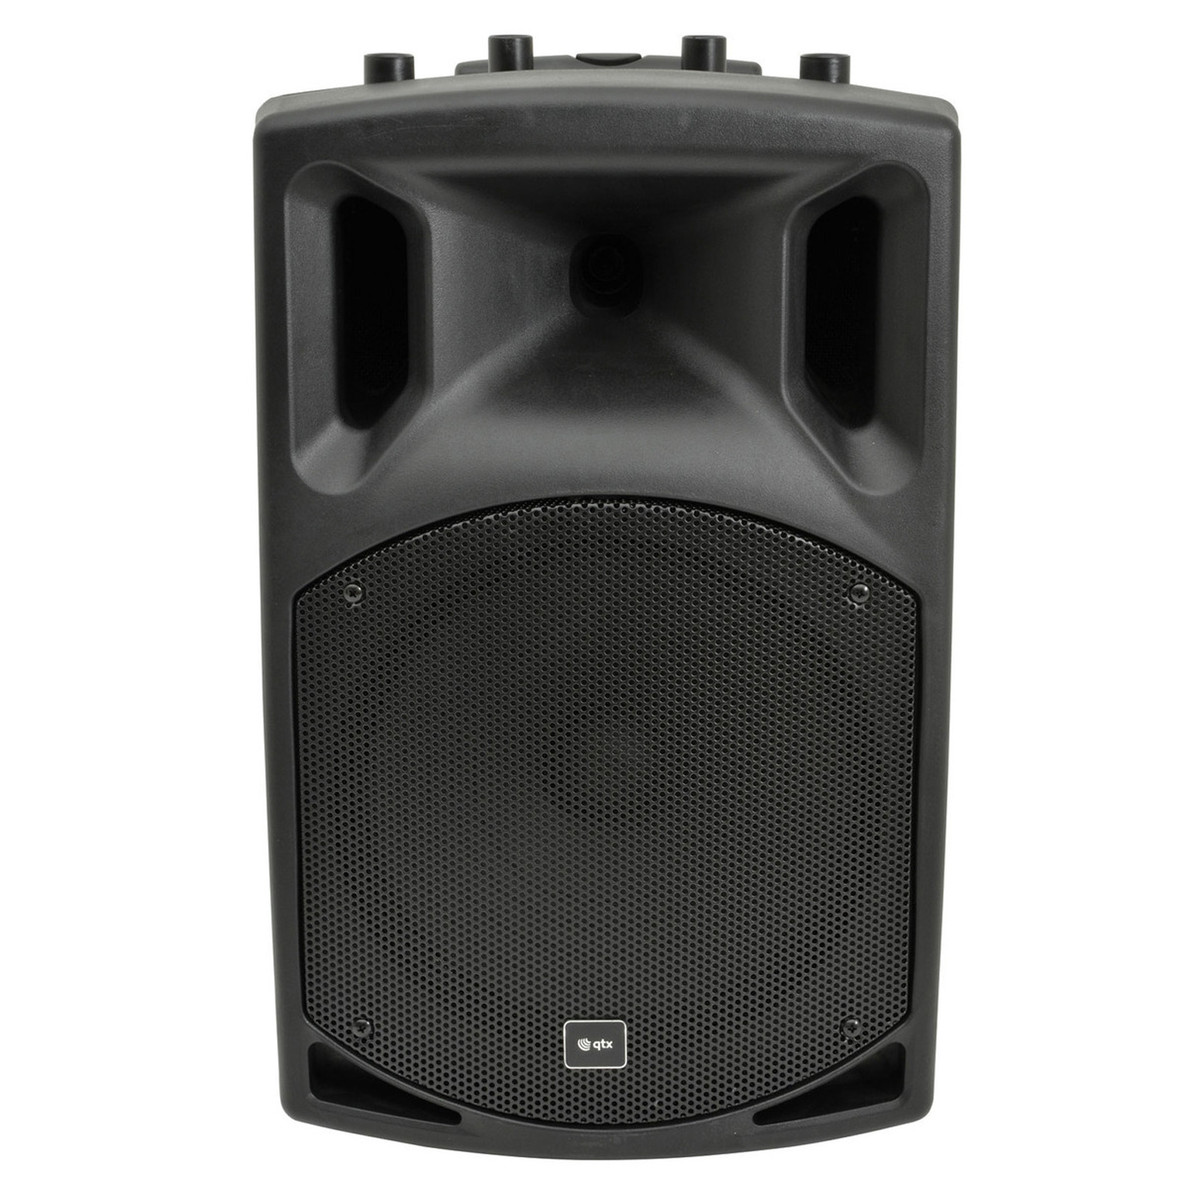 Bluetooth Box Qtx Qx15pa Portable Pa System With Bluetooth Box Opened